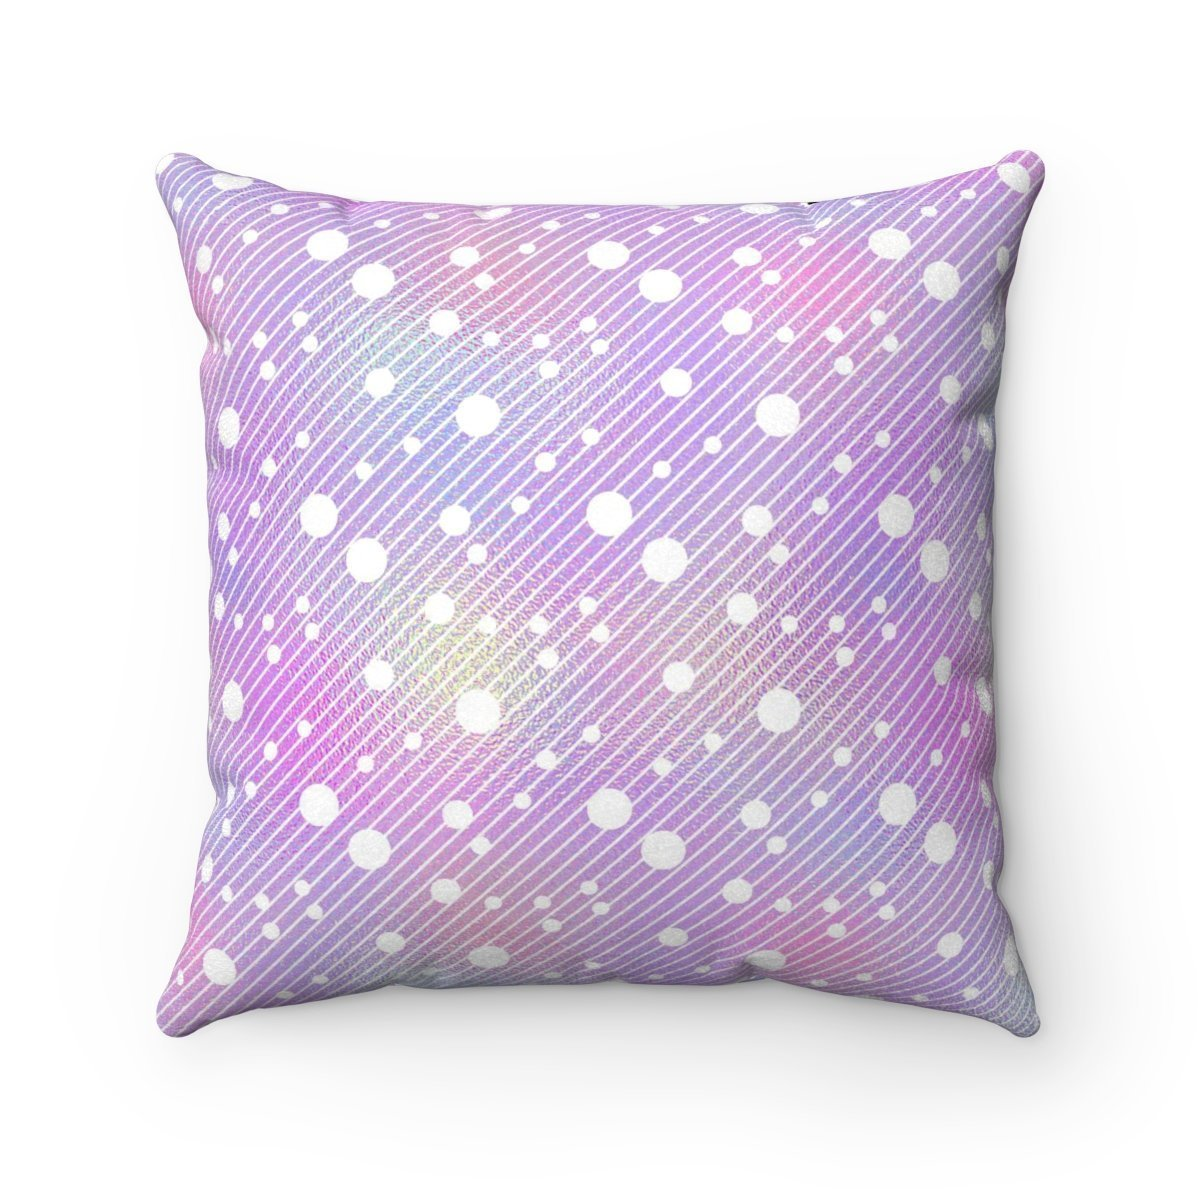 Hologram Faux suede decorative cushion gift for mom-Home Decor - Decorative Accents - Pillows & Throws - Decorative Pillows-Maison d'Elite-Très Elite